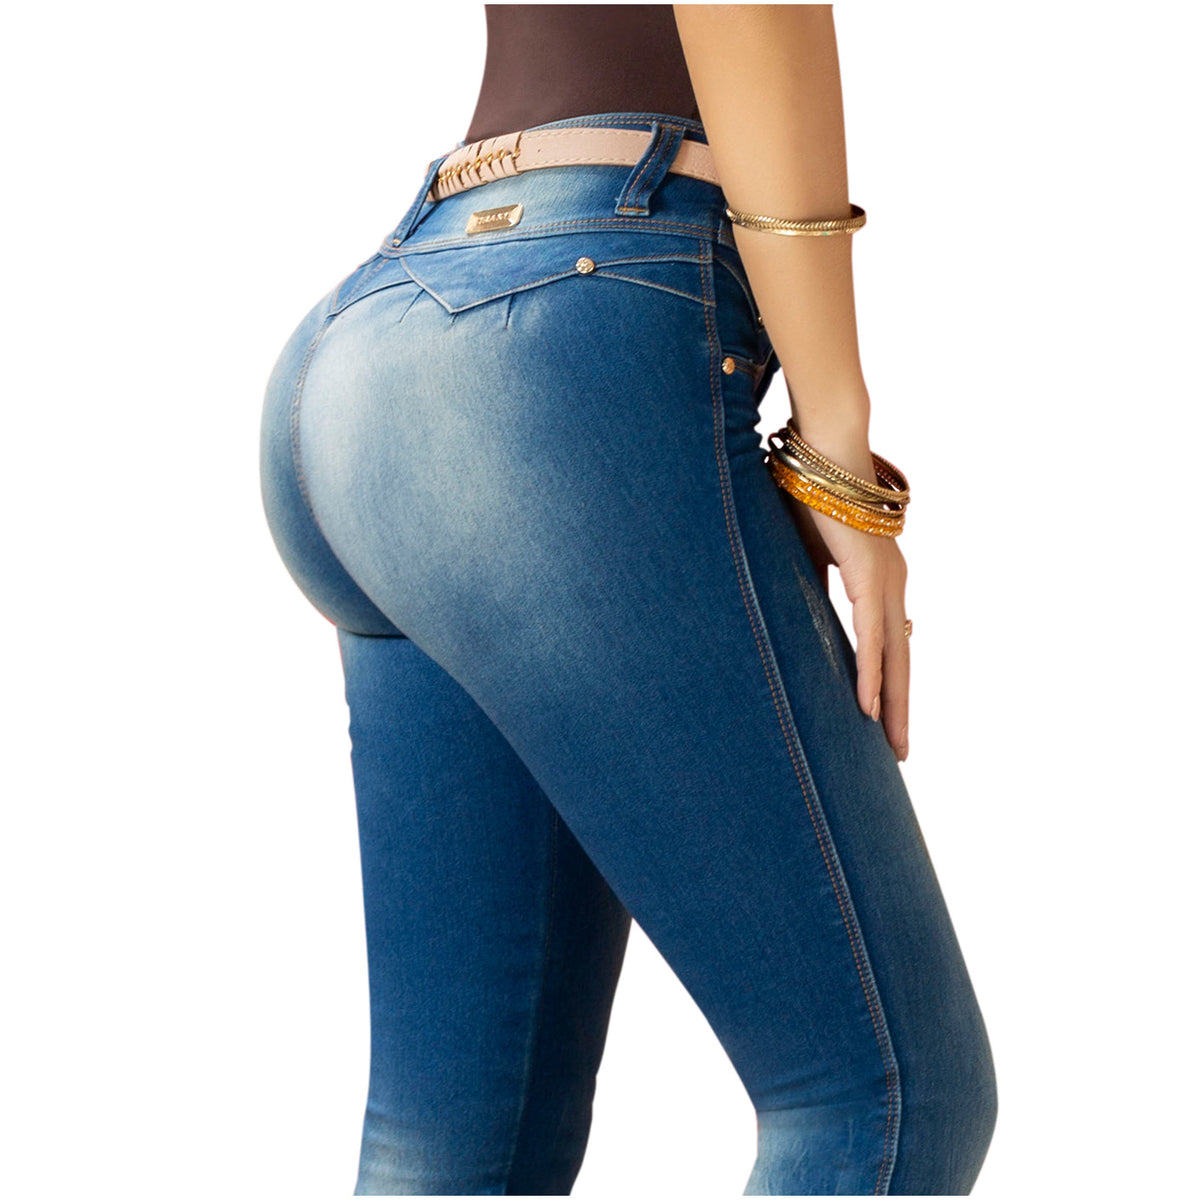 Draxy Women Colombian Shaping Butt lifting Butt Jeans for Women